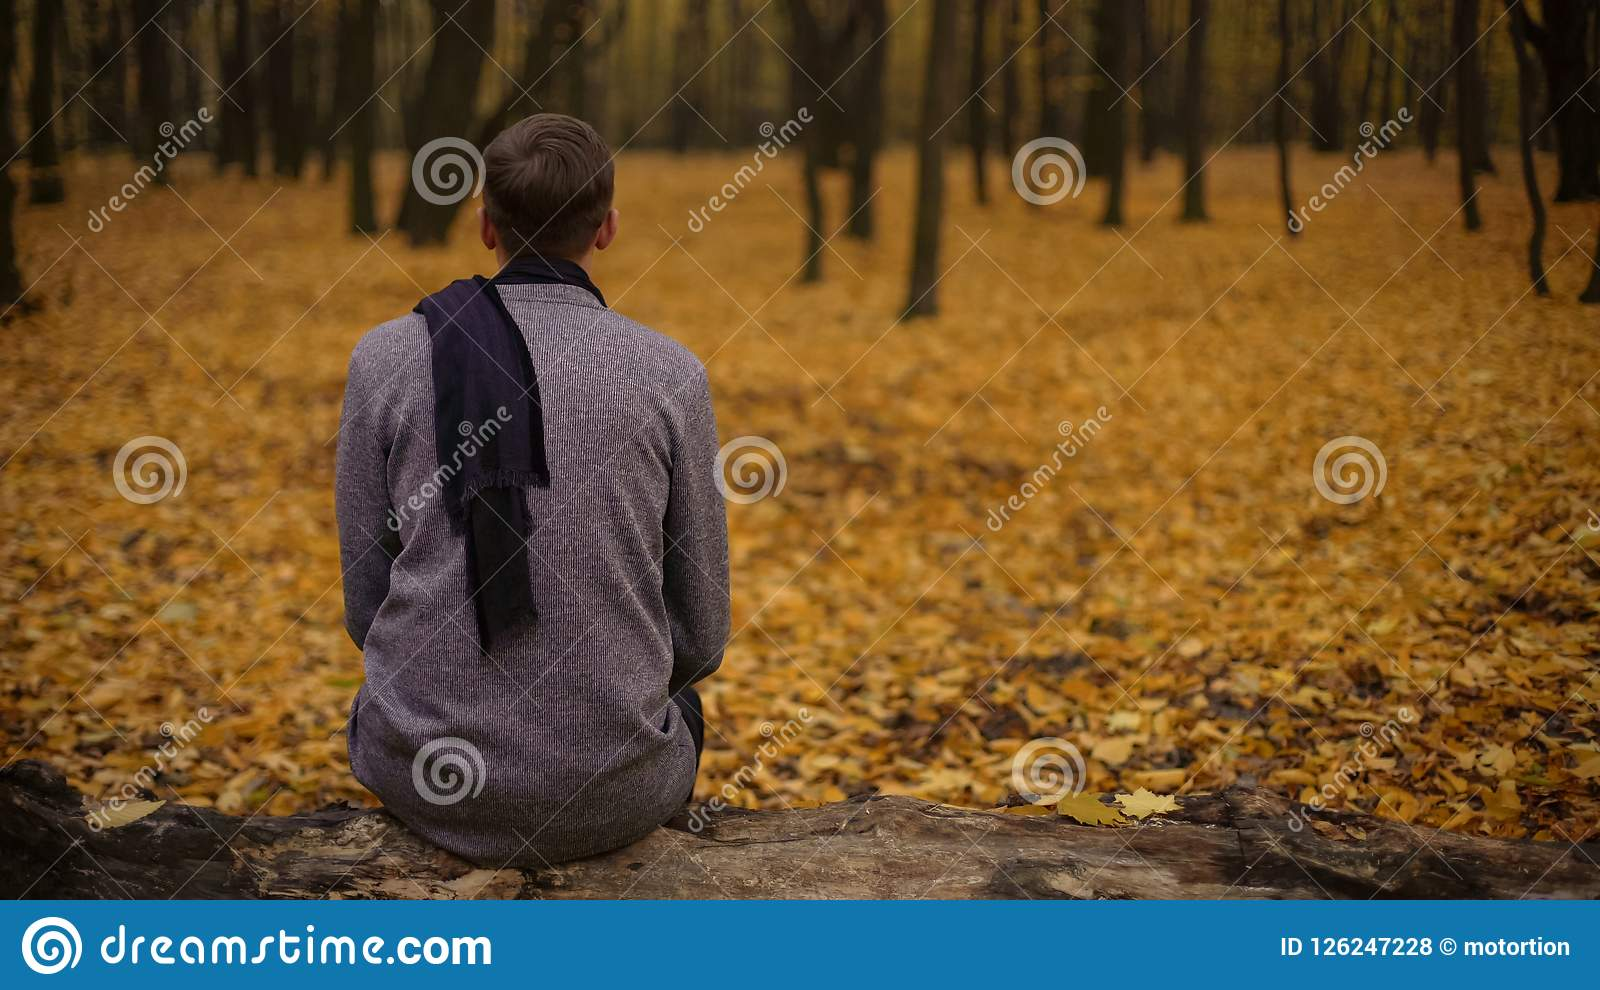 Guy sitting in park inspired by beautiful nature and thinking about past life